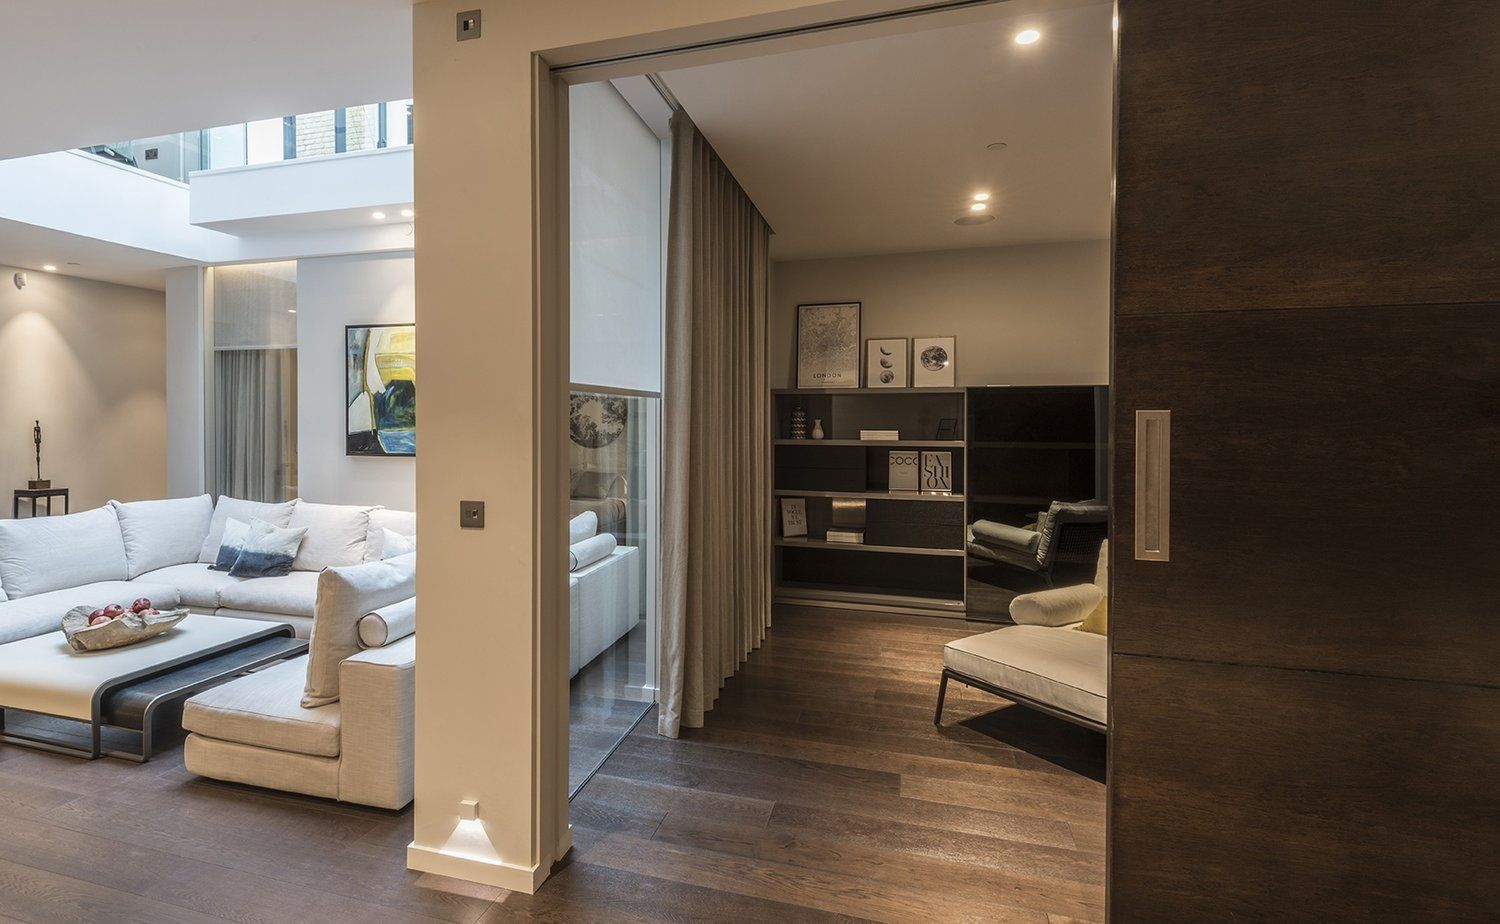 Recessed Curtain Tracks, Blinds, And Lights In London Basement